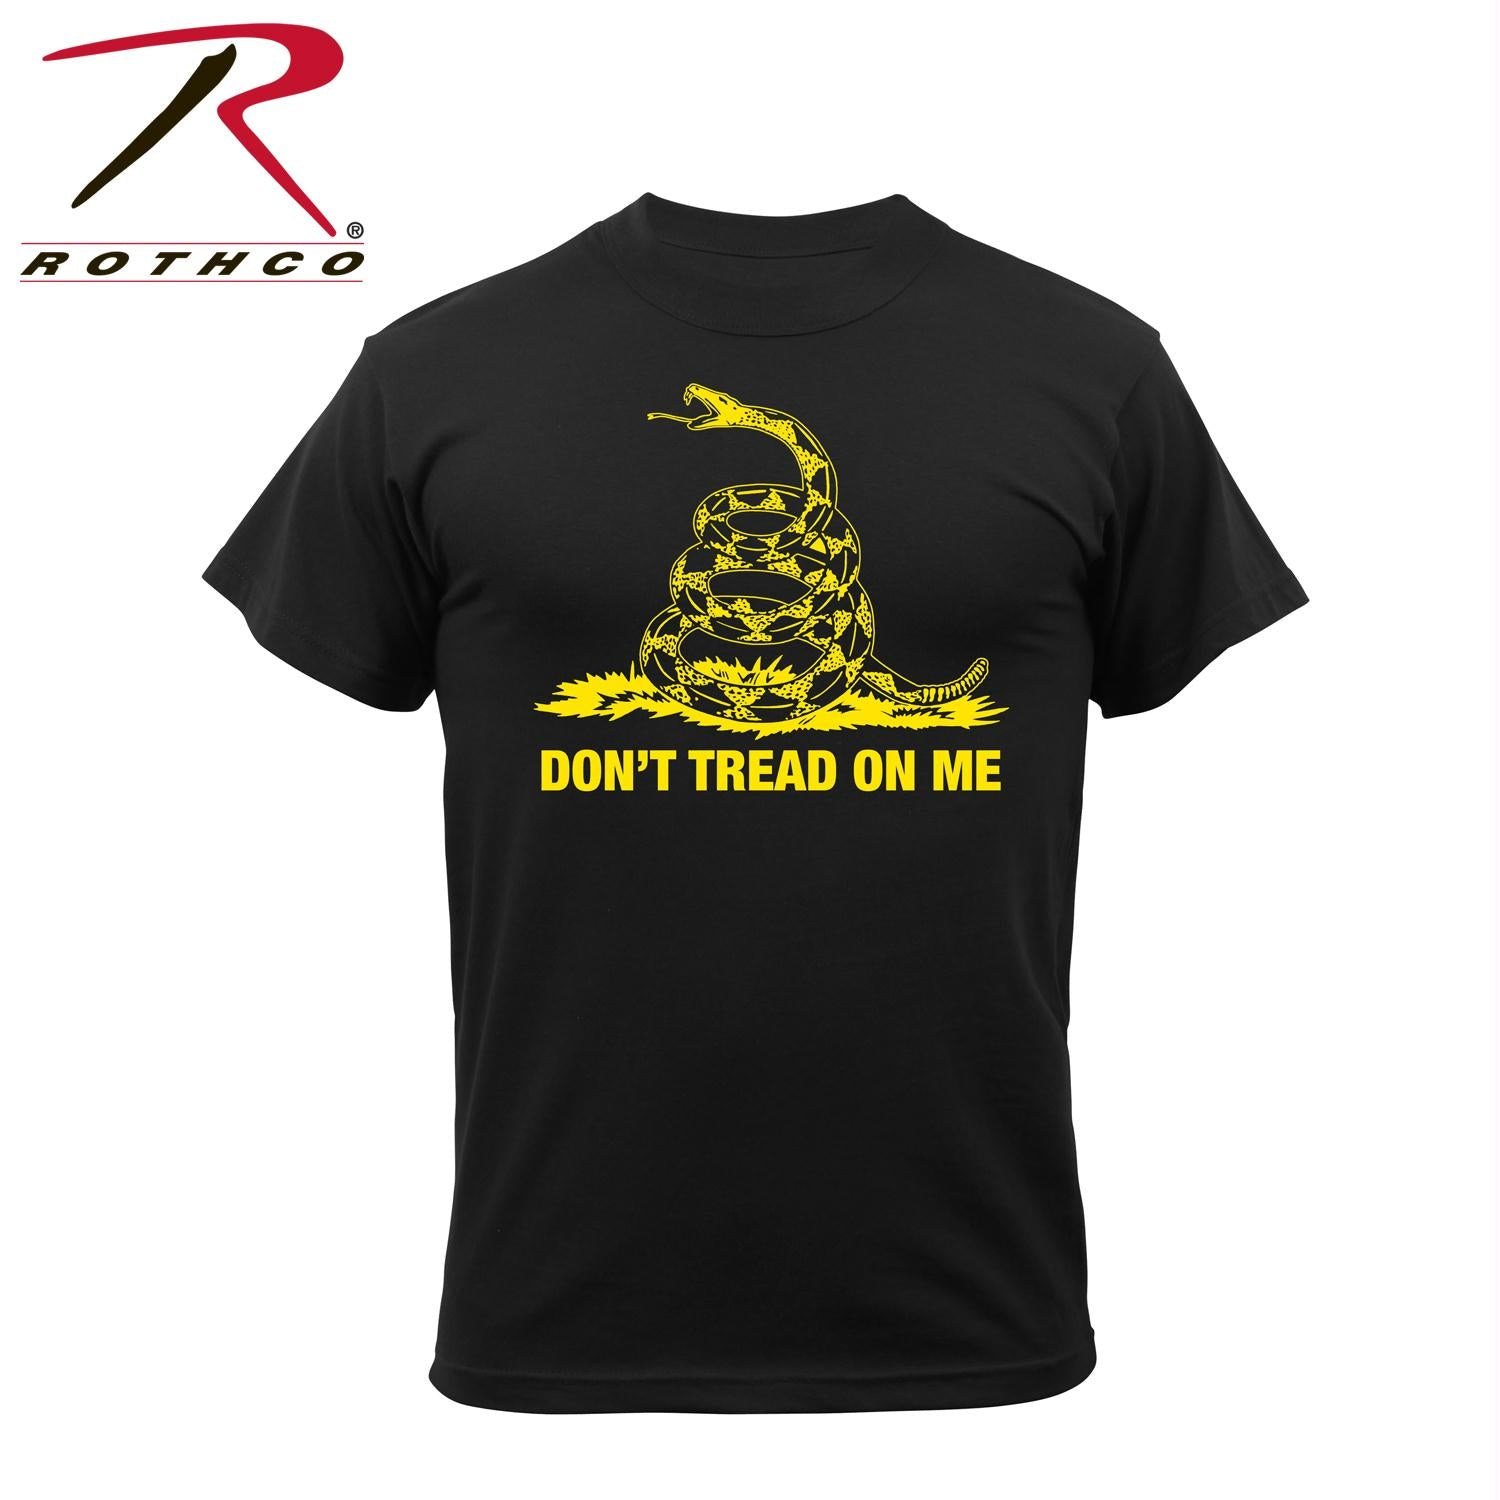 Rothco Don't Tread On Me Vintage T-Shirt - Black / L